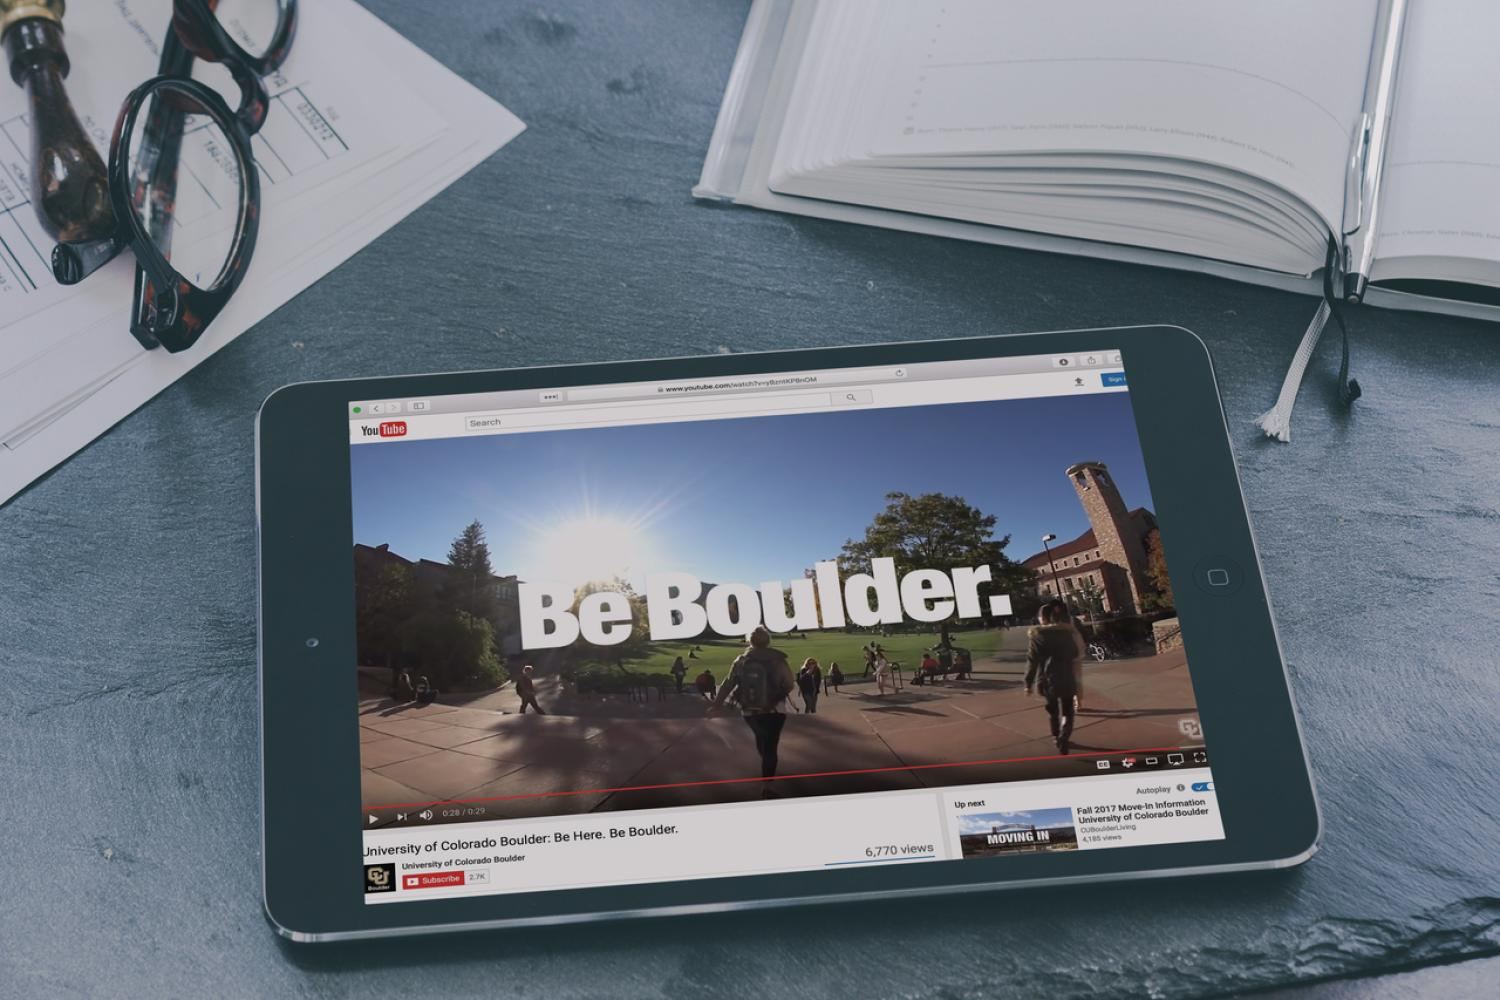 CU Boulder YouTube Channel showing on a tablet